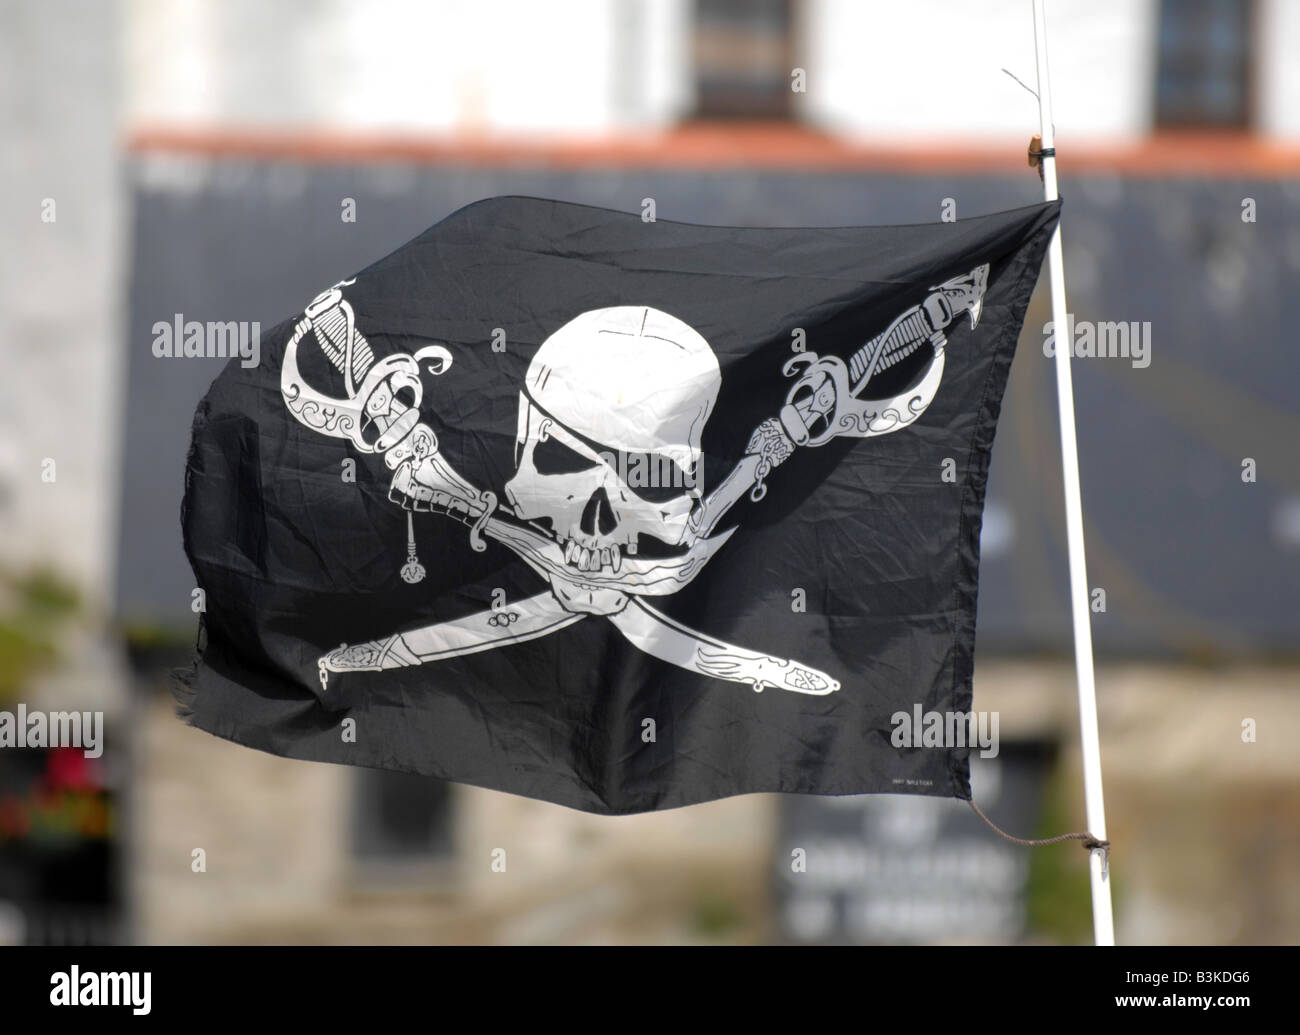 Pirate flag - Stock Image